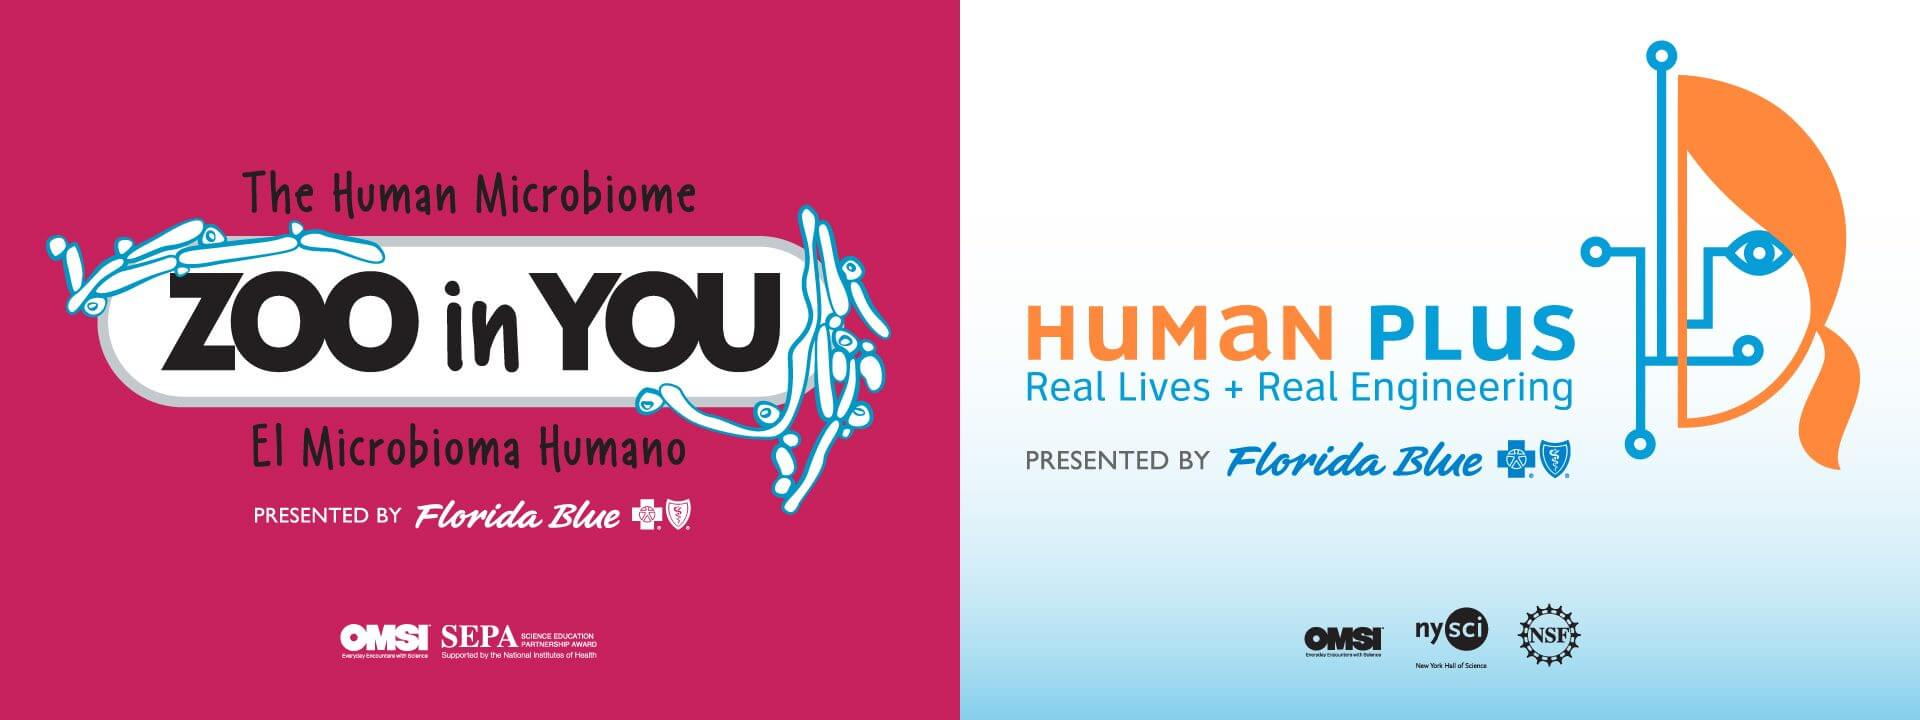 Zoo In You and Human Plus Logos; presented by Florida Blue.